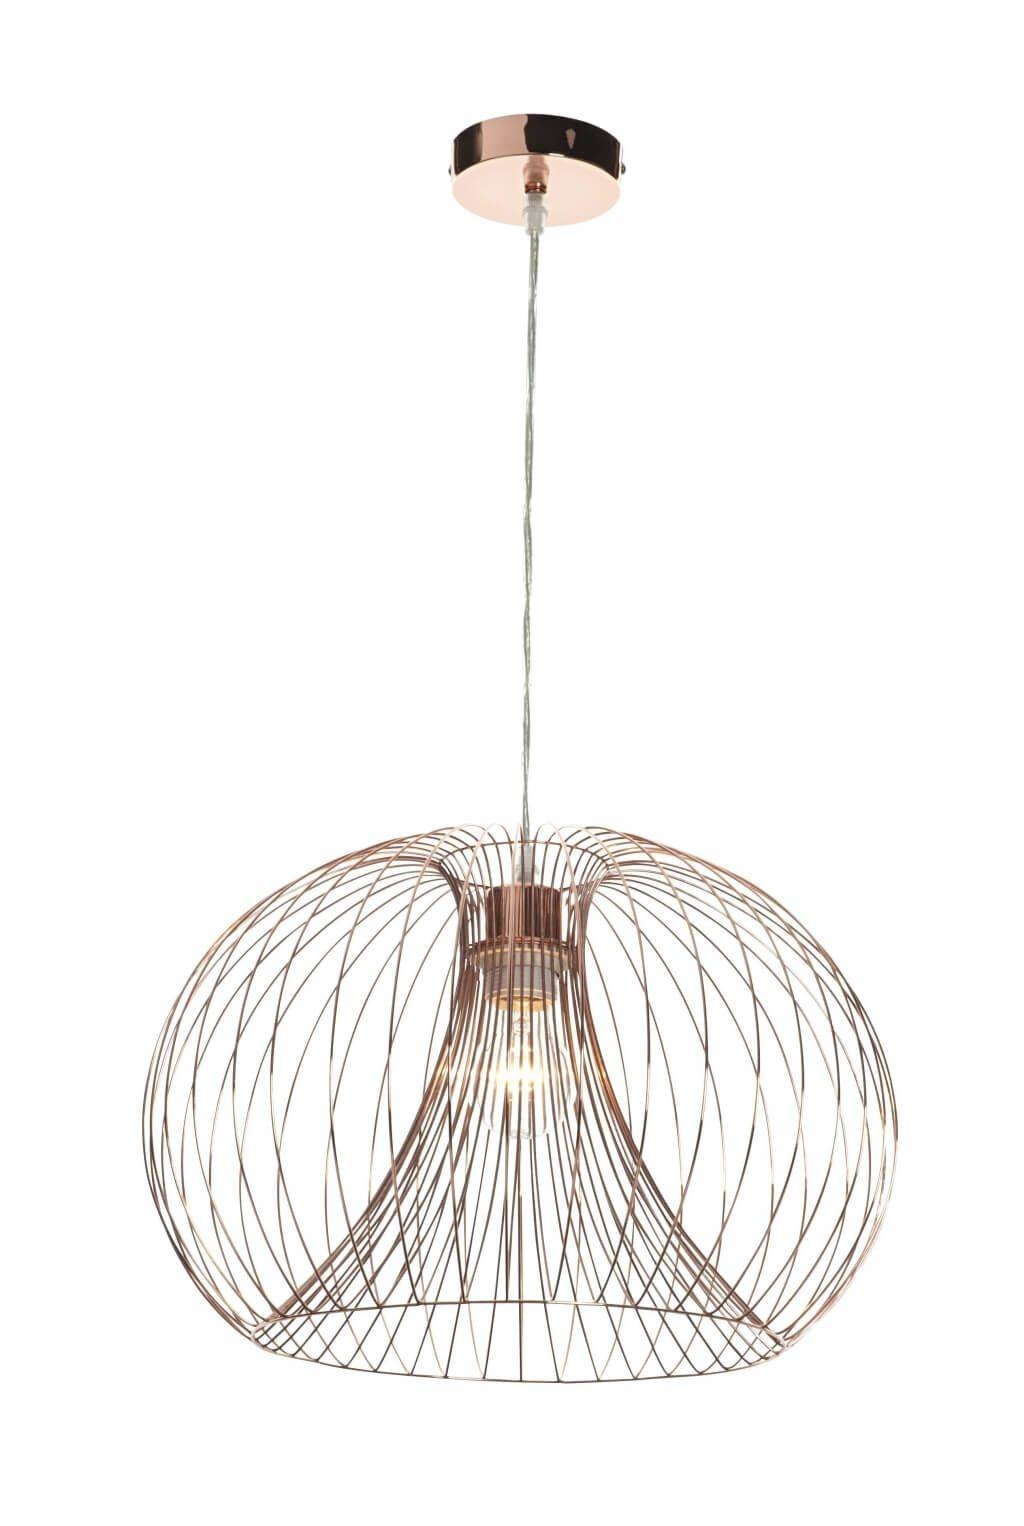 Lighting: Awesome Copper Pendant Light Fitting With Copper Wire inside Corded Pendant Lights (Image 7 of 15)